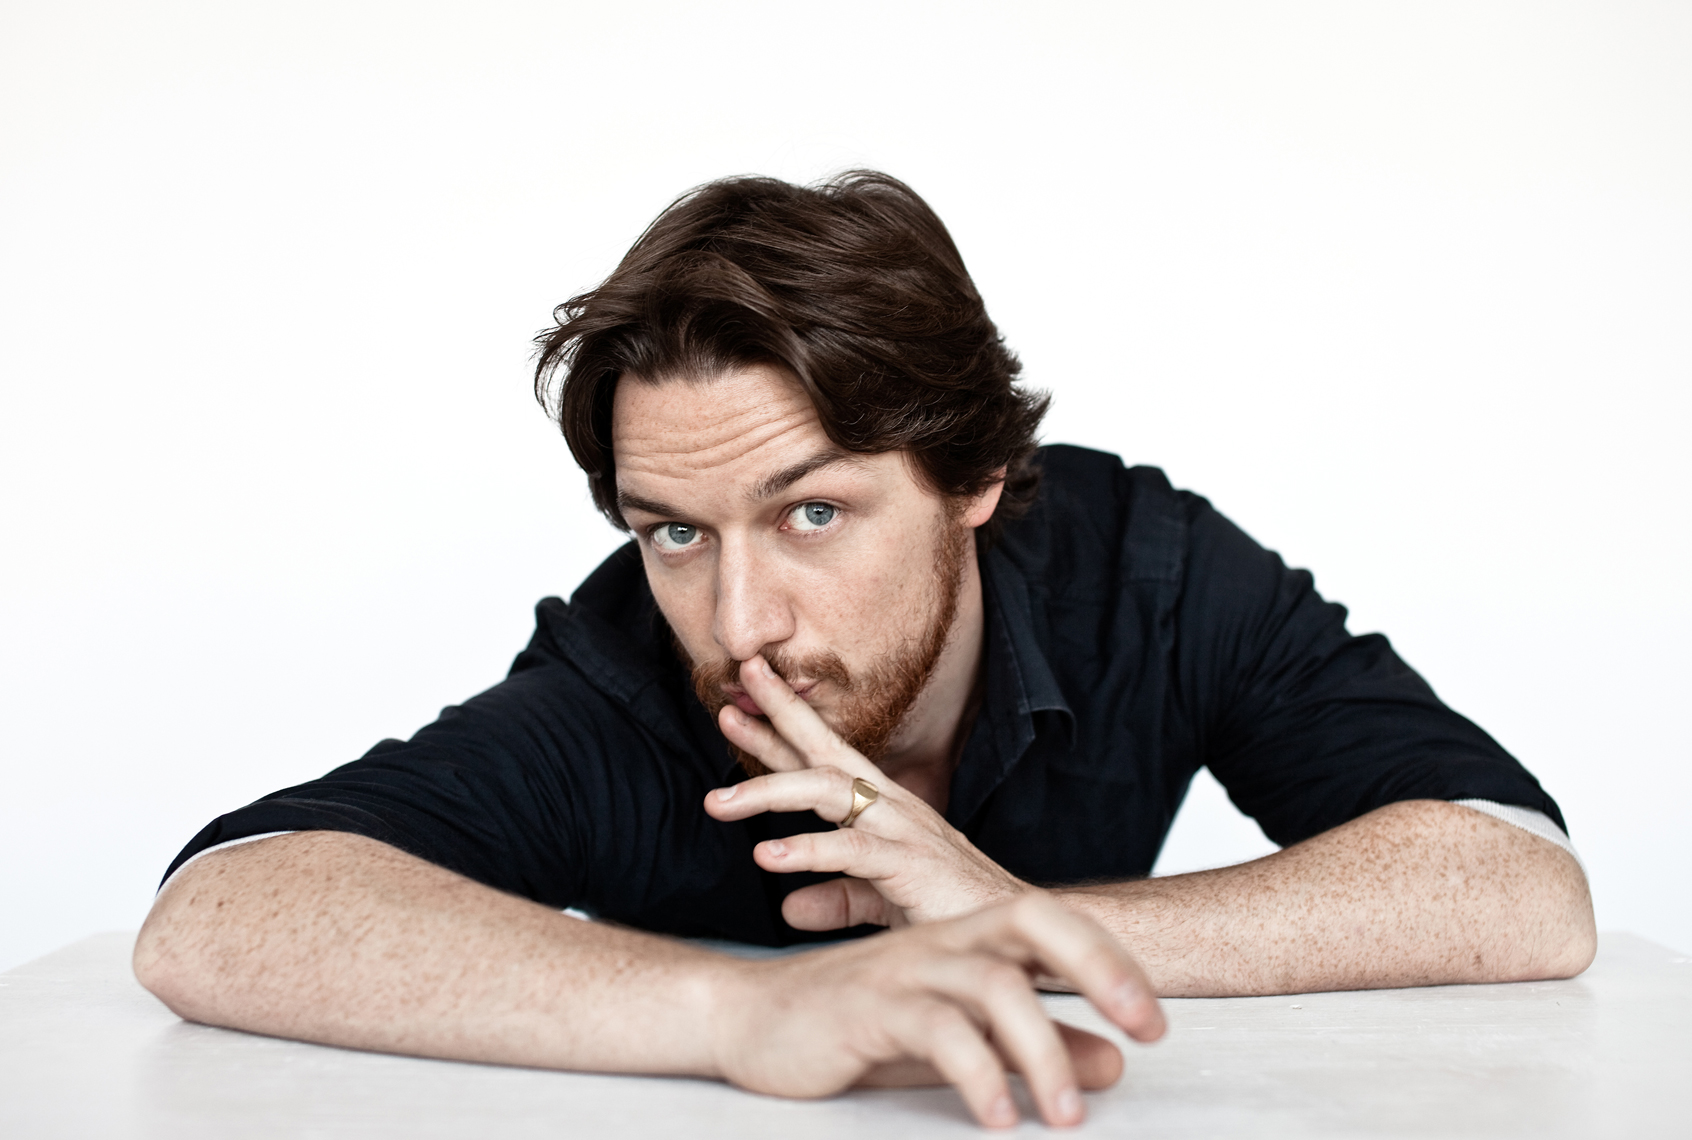 James_McAvoy_Rainer_Hosch_5